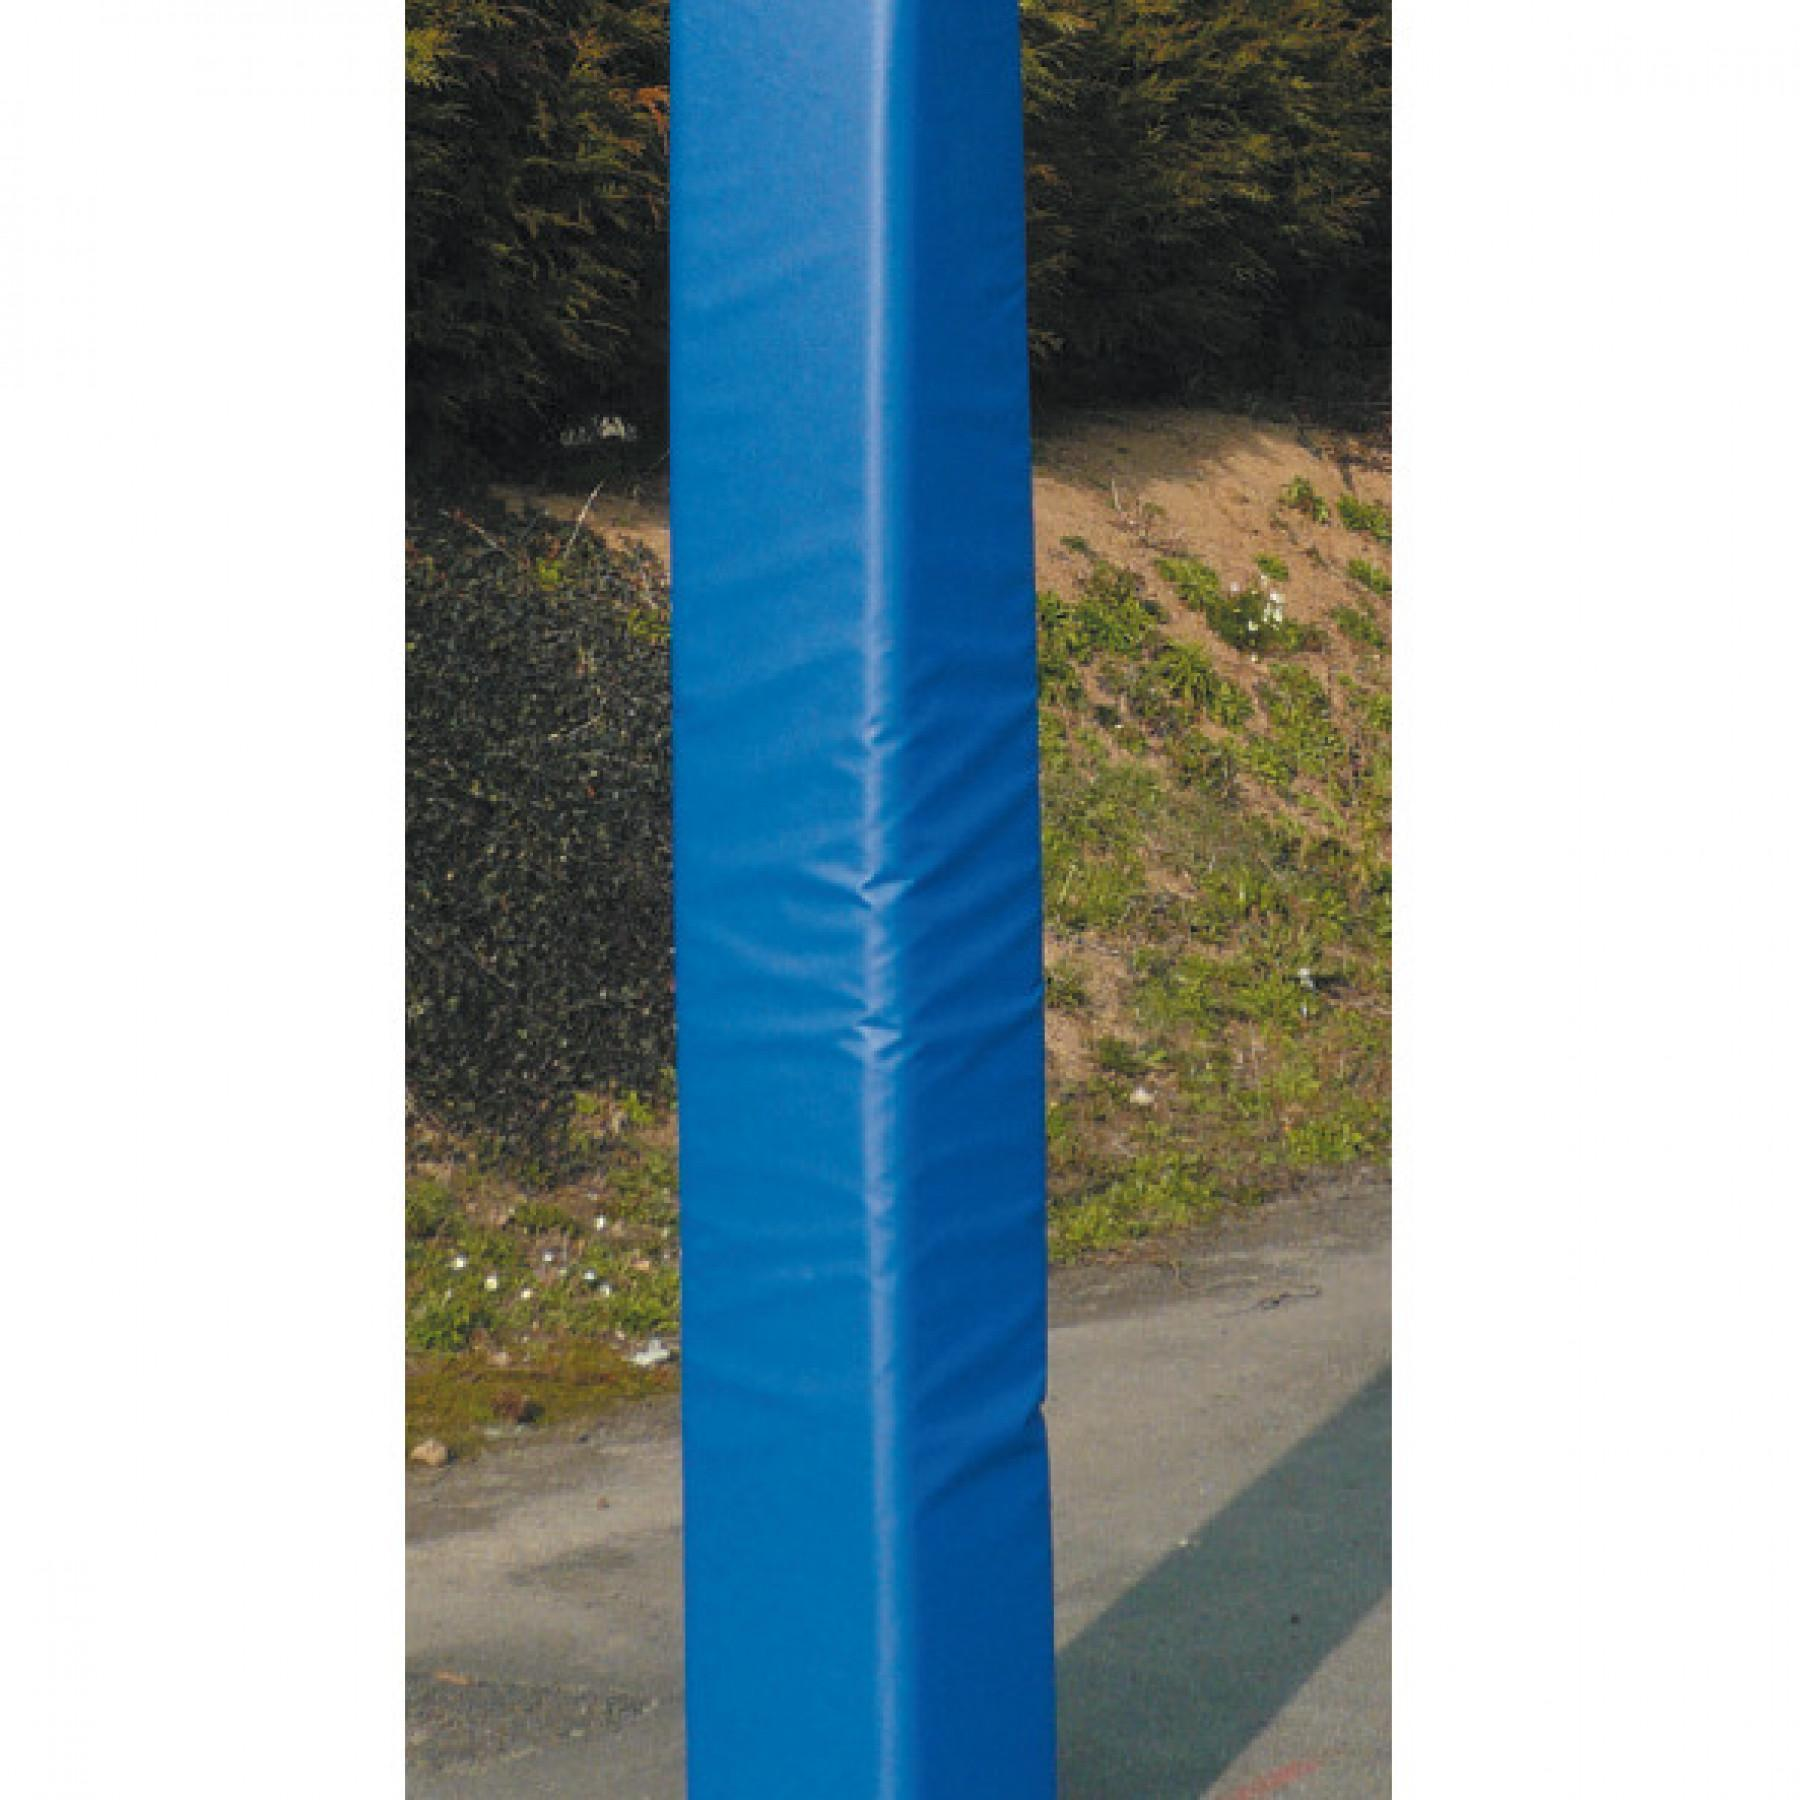 Pair of basketball post protectors 24x24x200 cm Sporti France